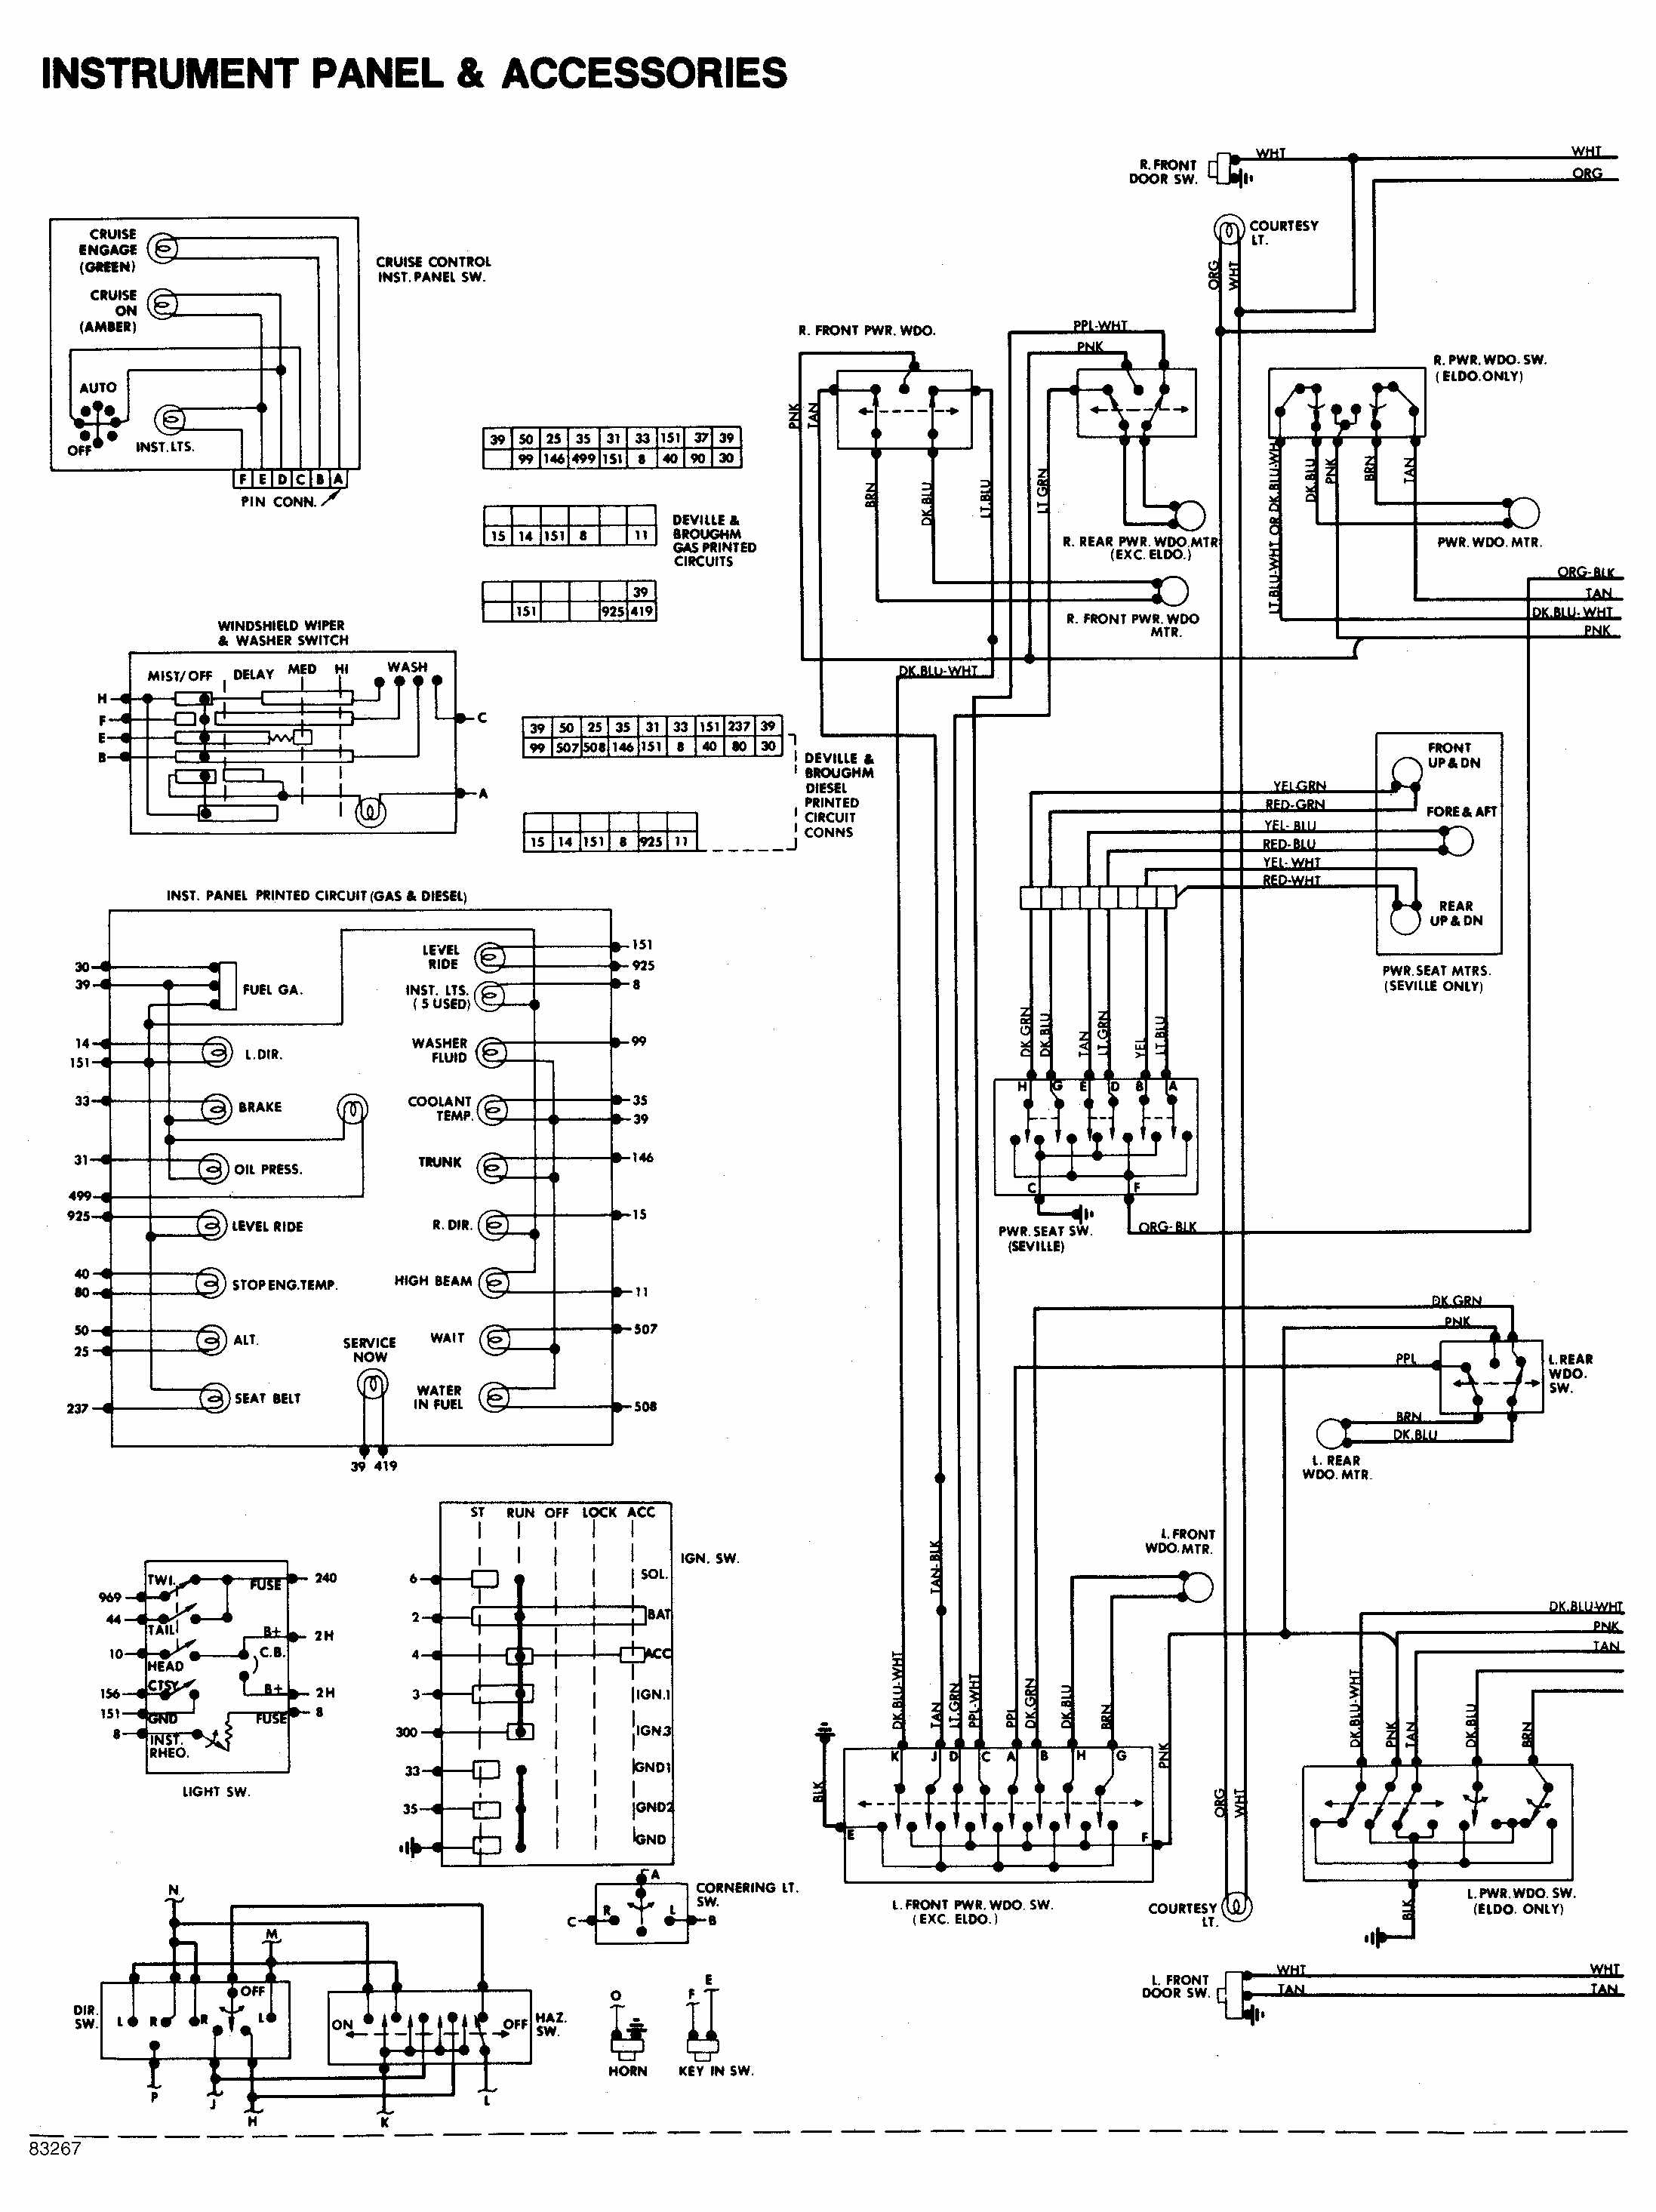 1966 Ih Wiring | Wiring Diagram  Vw Dome Light Wiring Diagram on 1957 vw wiring diagram, 1970 vw beetle wiring diagram, 1960 vw steering, 1960 vw headlights, 1960 vw fuel tank, 1960 vw engine, 67 vw wiring diagram, 1979 vw beetle wiring diagram, 1968 vw beetle wiring diagram, 1960 vw motor, 1973 vw wiring diagram, 1972 vw wiring diagram, 70 vw wiring diagram, 1969 vw wiring diagram,